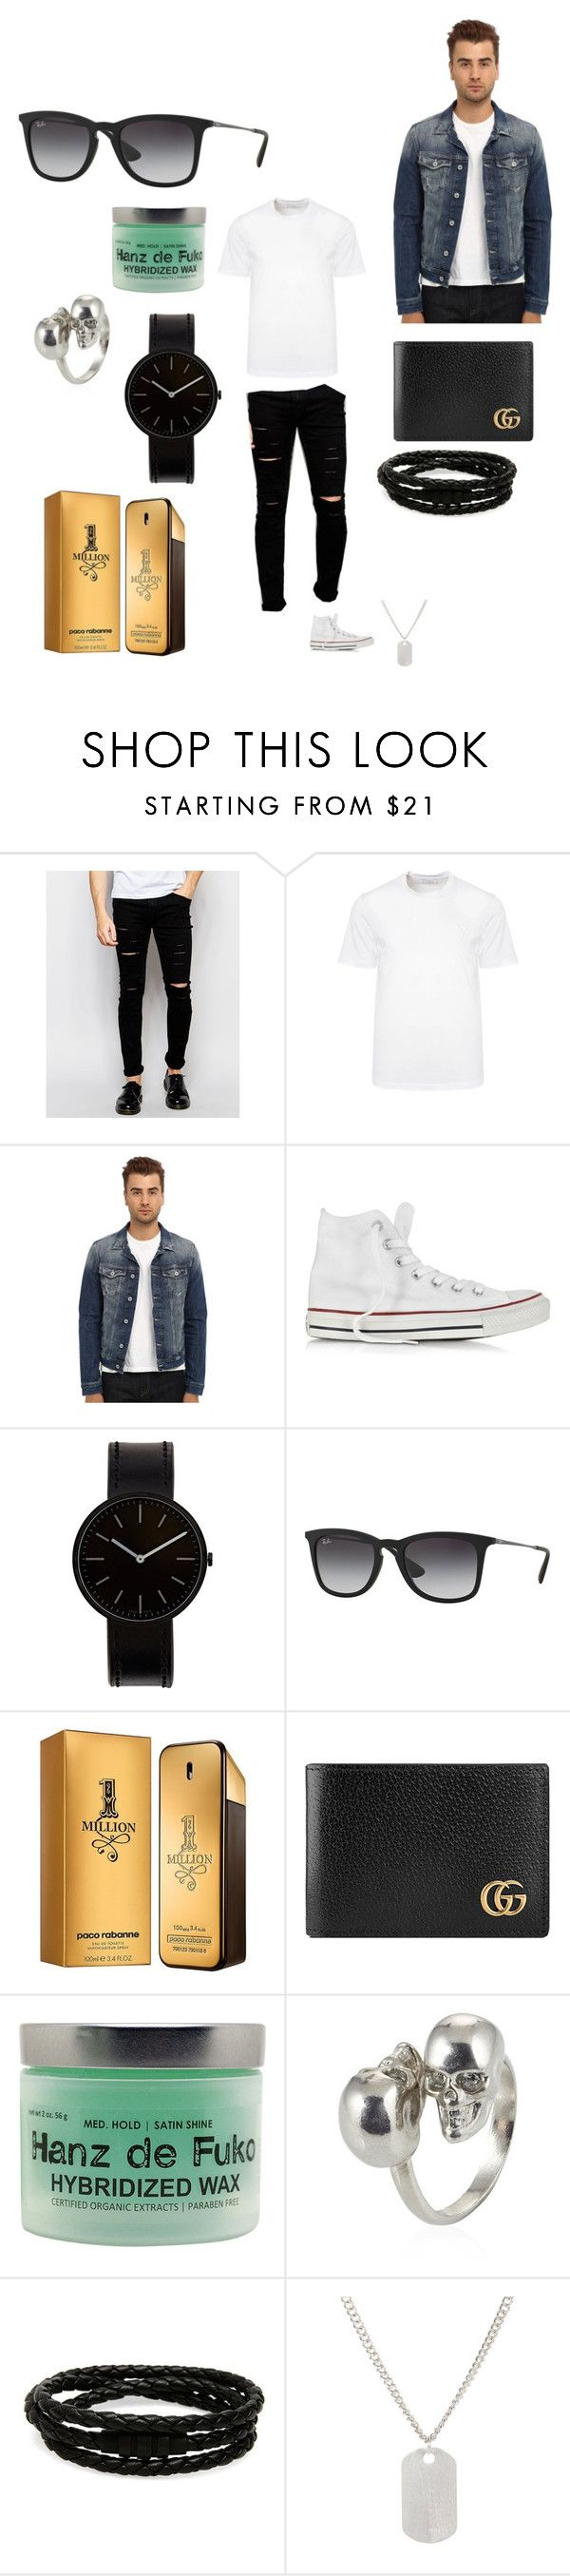 """💰style💰"" by sebastian97s ❤ liked on Polyvore featuring Cheap Monday, Versace, Mavi, Converse, Uniform Wares, Ray-Ban, Paco Rabanne, Gucci, Hanz De Fuko and Alexander McQueen"